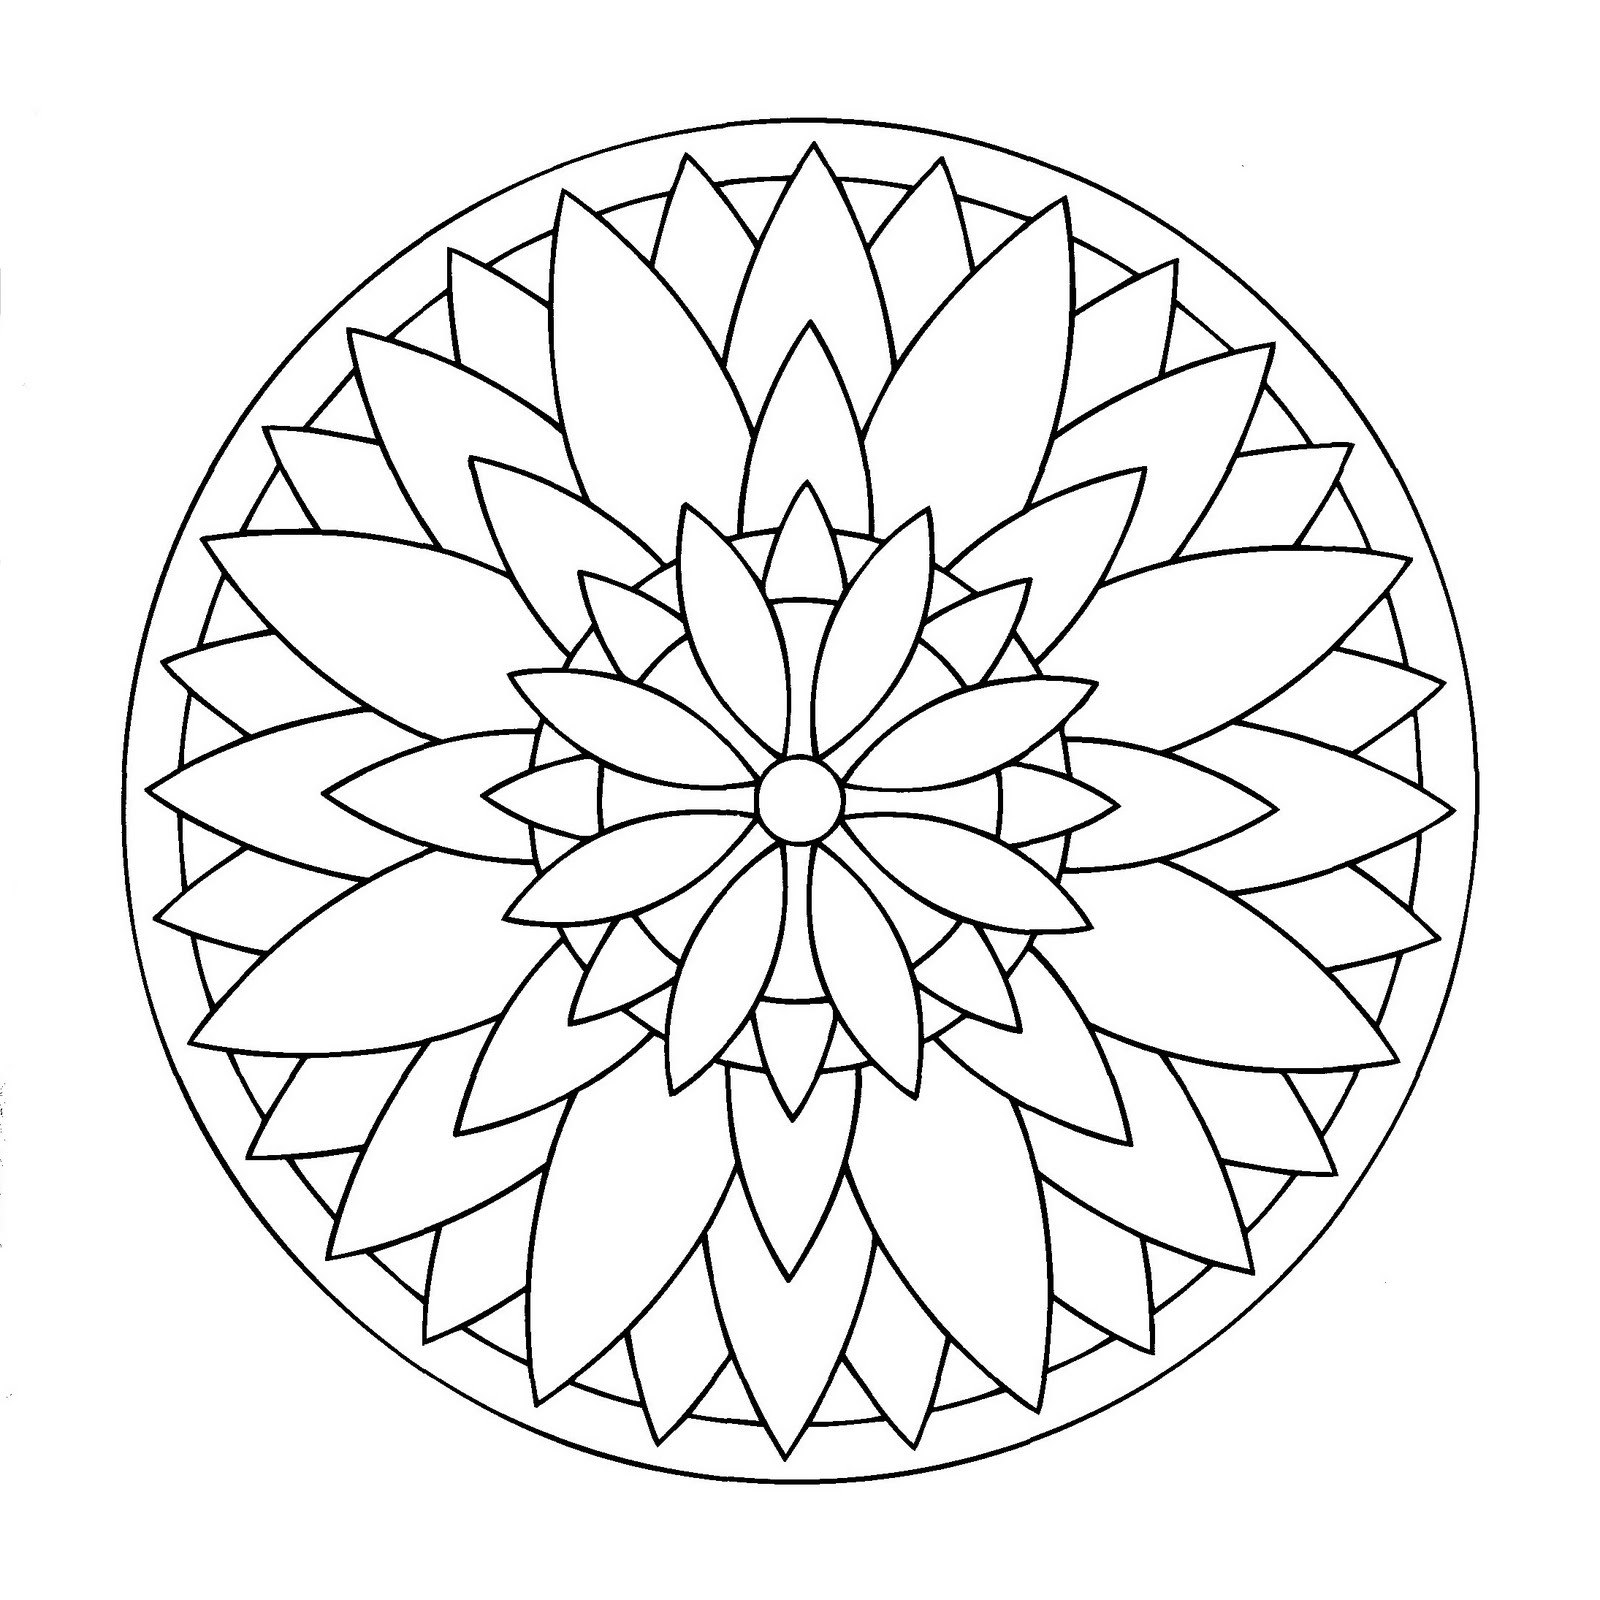 mandala colouring pages for kids mandala coloring pages for kids coloring pages to kids pages mandala for colouring